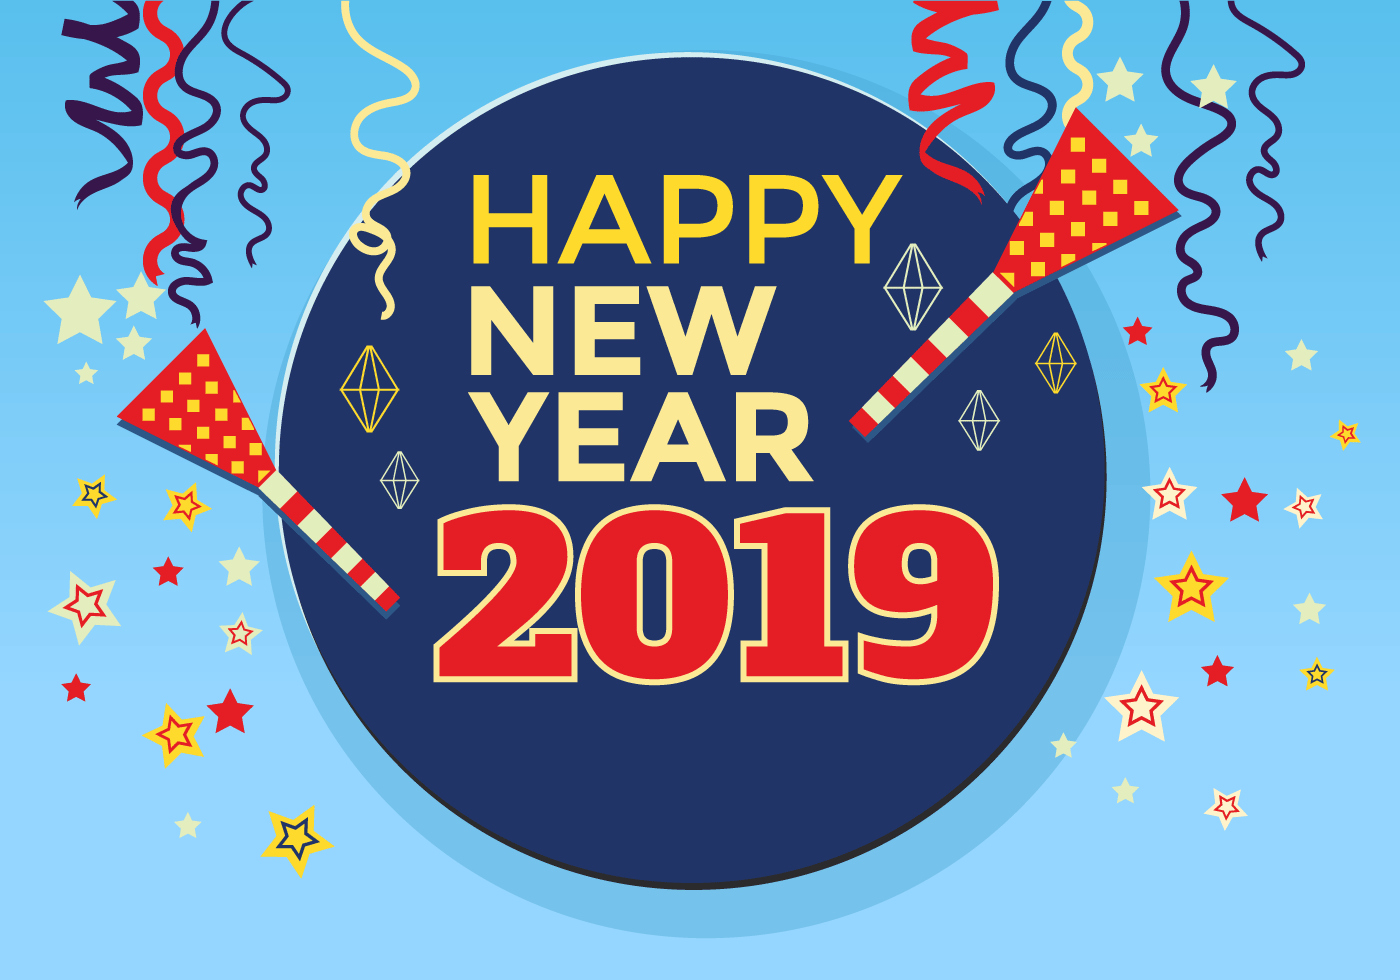 happy new year 2018 greeting card template download free vector art stock graphics images